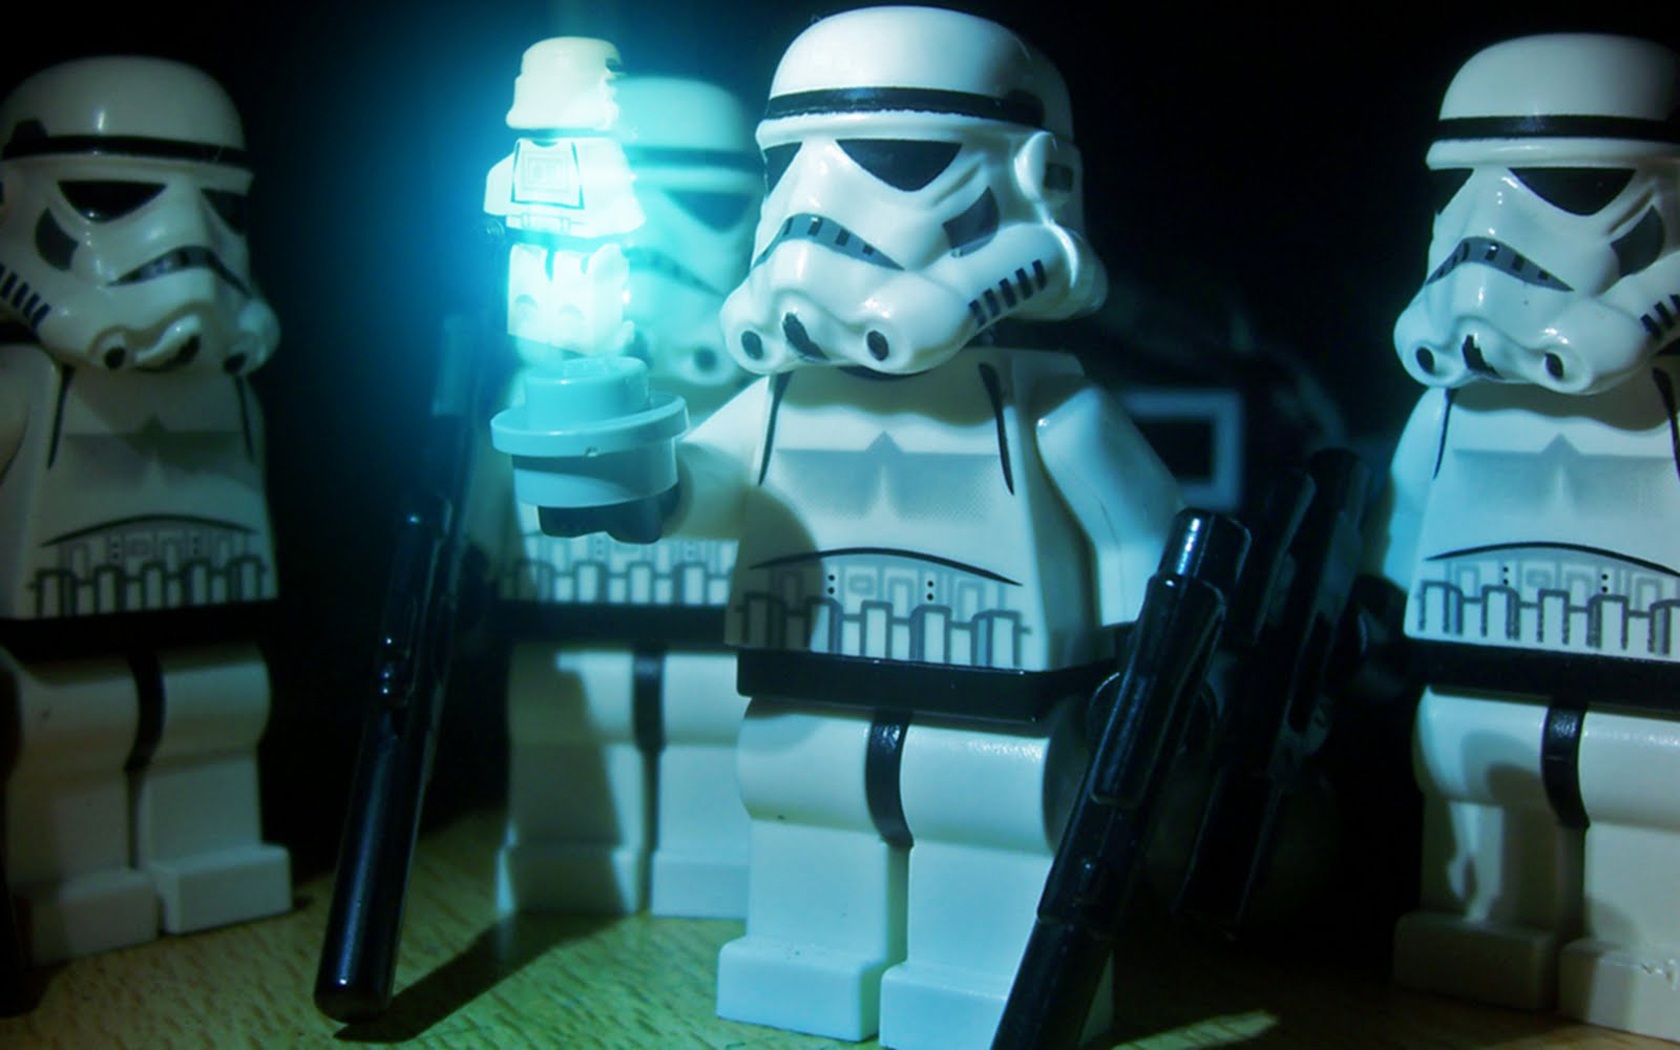 Lego Star Wars Wallpaper Posted By John Johnson